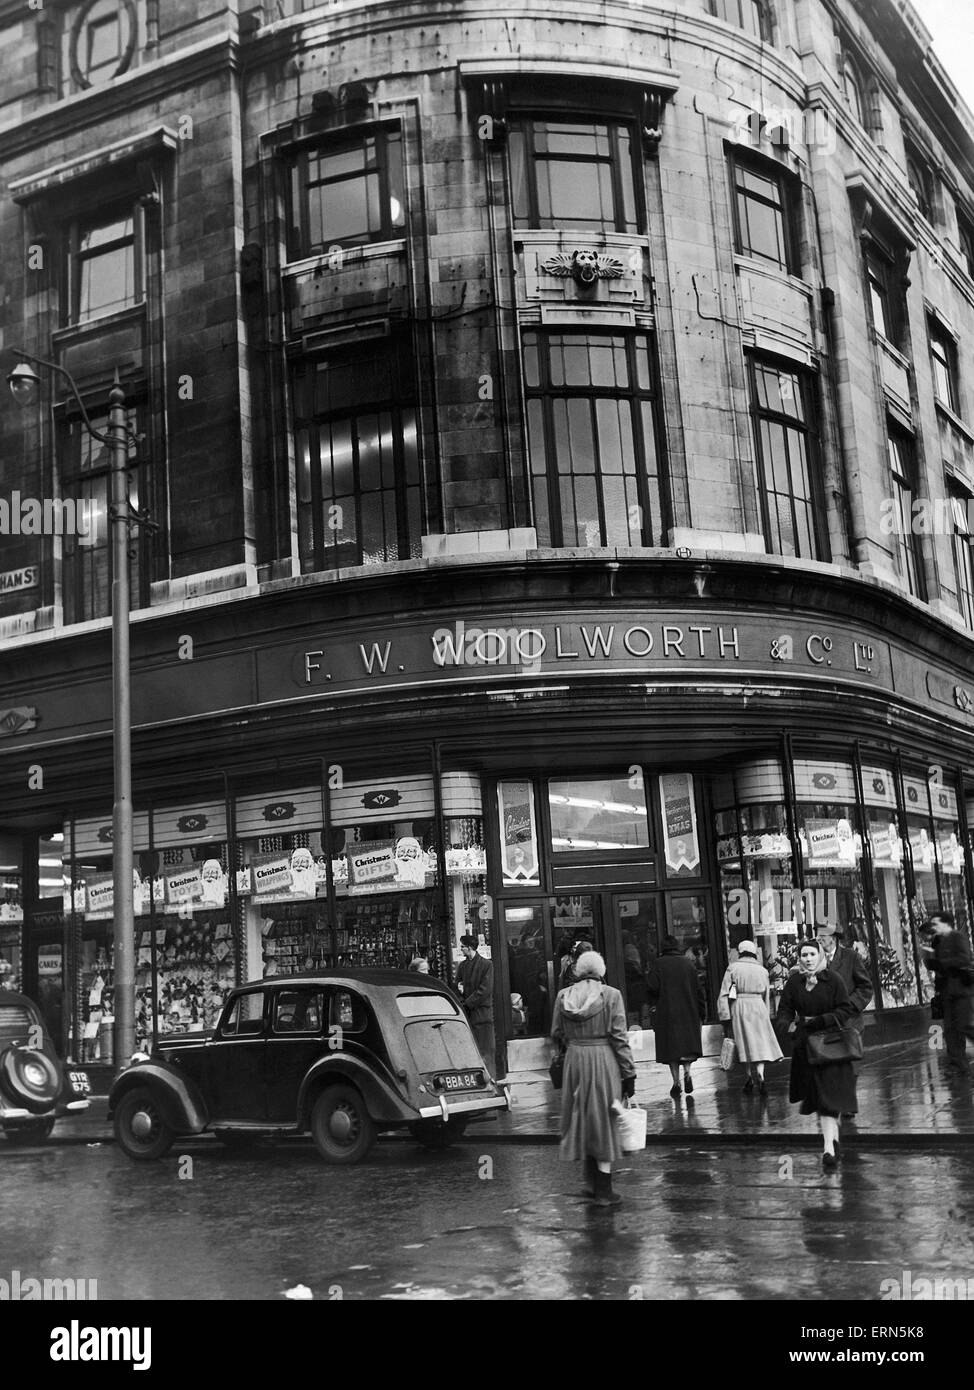 F W Woolworth store on the corner of Oldham Street and Piccadilly, Manchester, Greater Manchester. 29th November - Stock Image